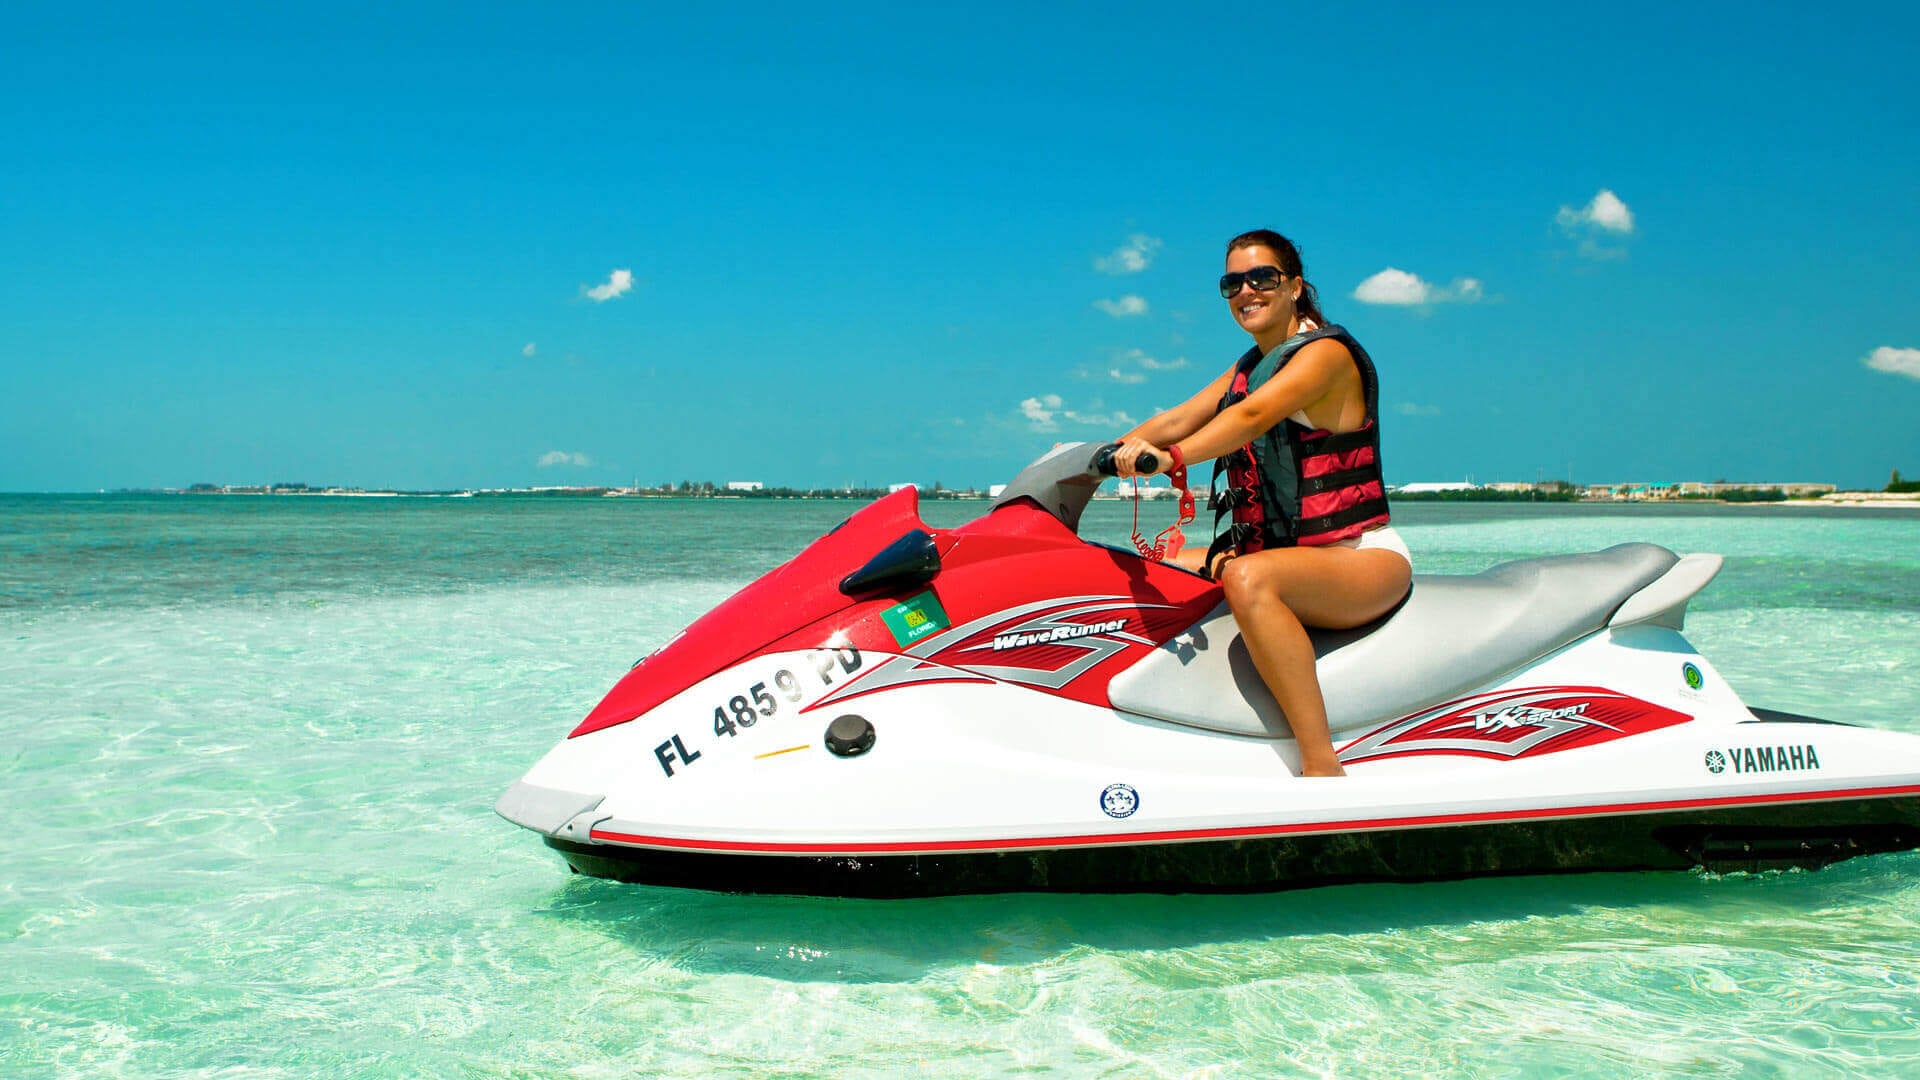 There Is Nothing More Exhilarating Than Cruising Through The Open Water On A Fast And Agile Jet Ski This Distinctive Experience Offers Riders Chance To